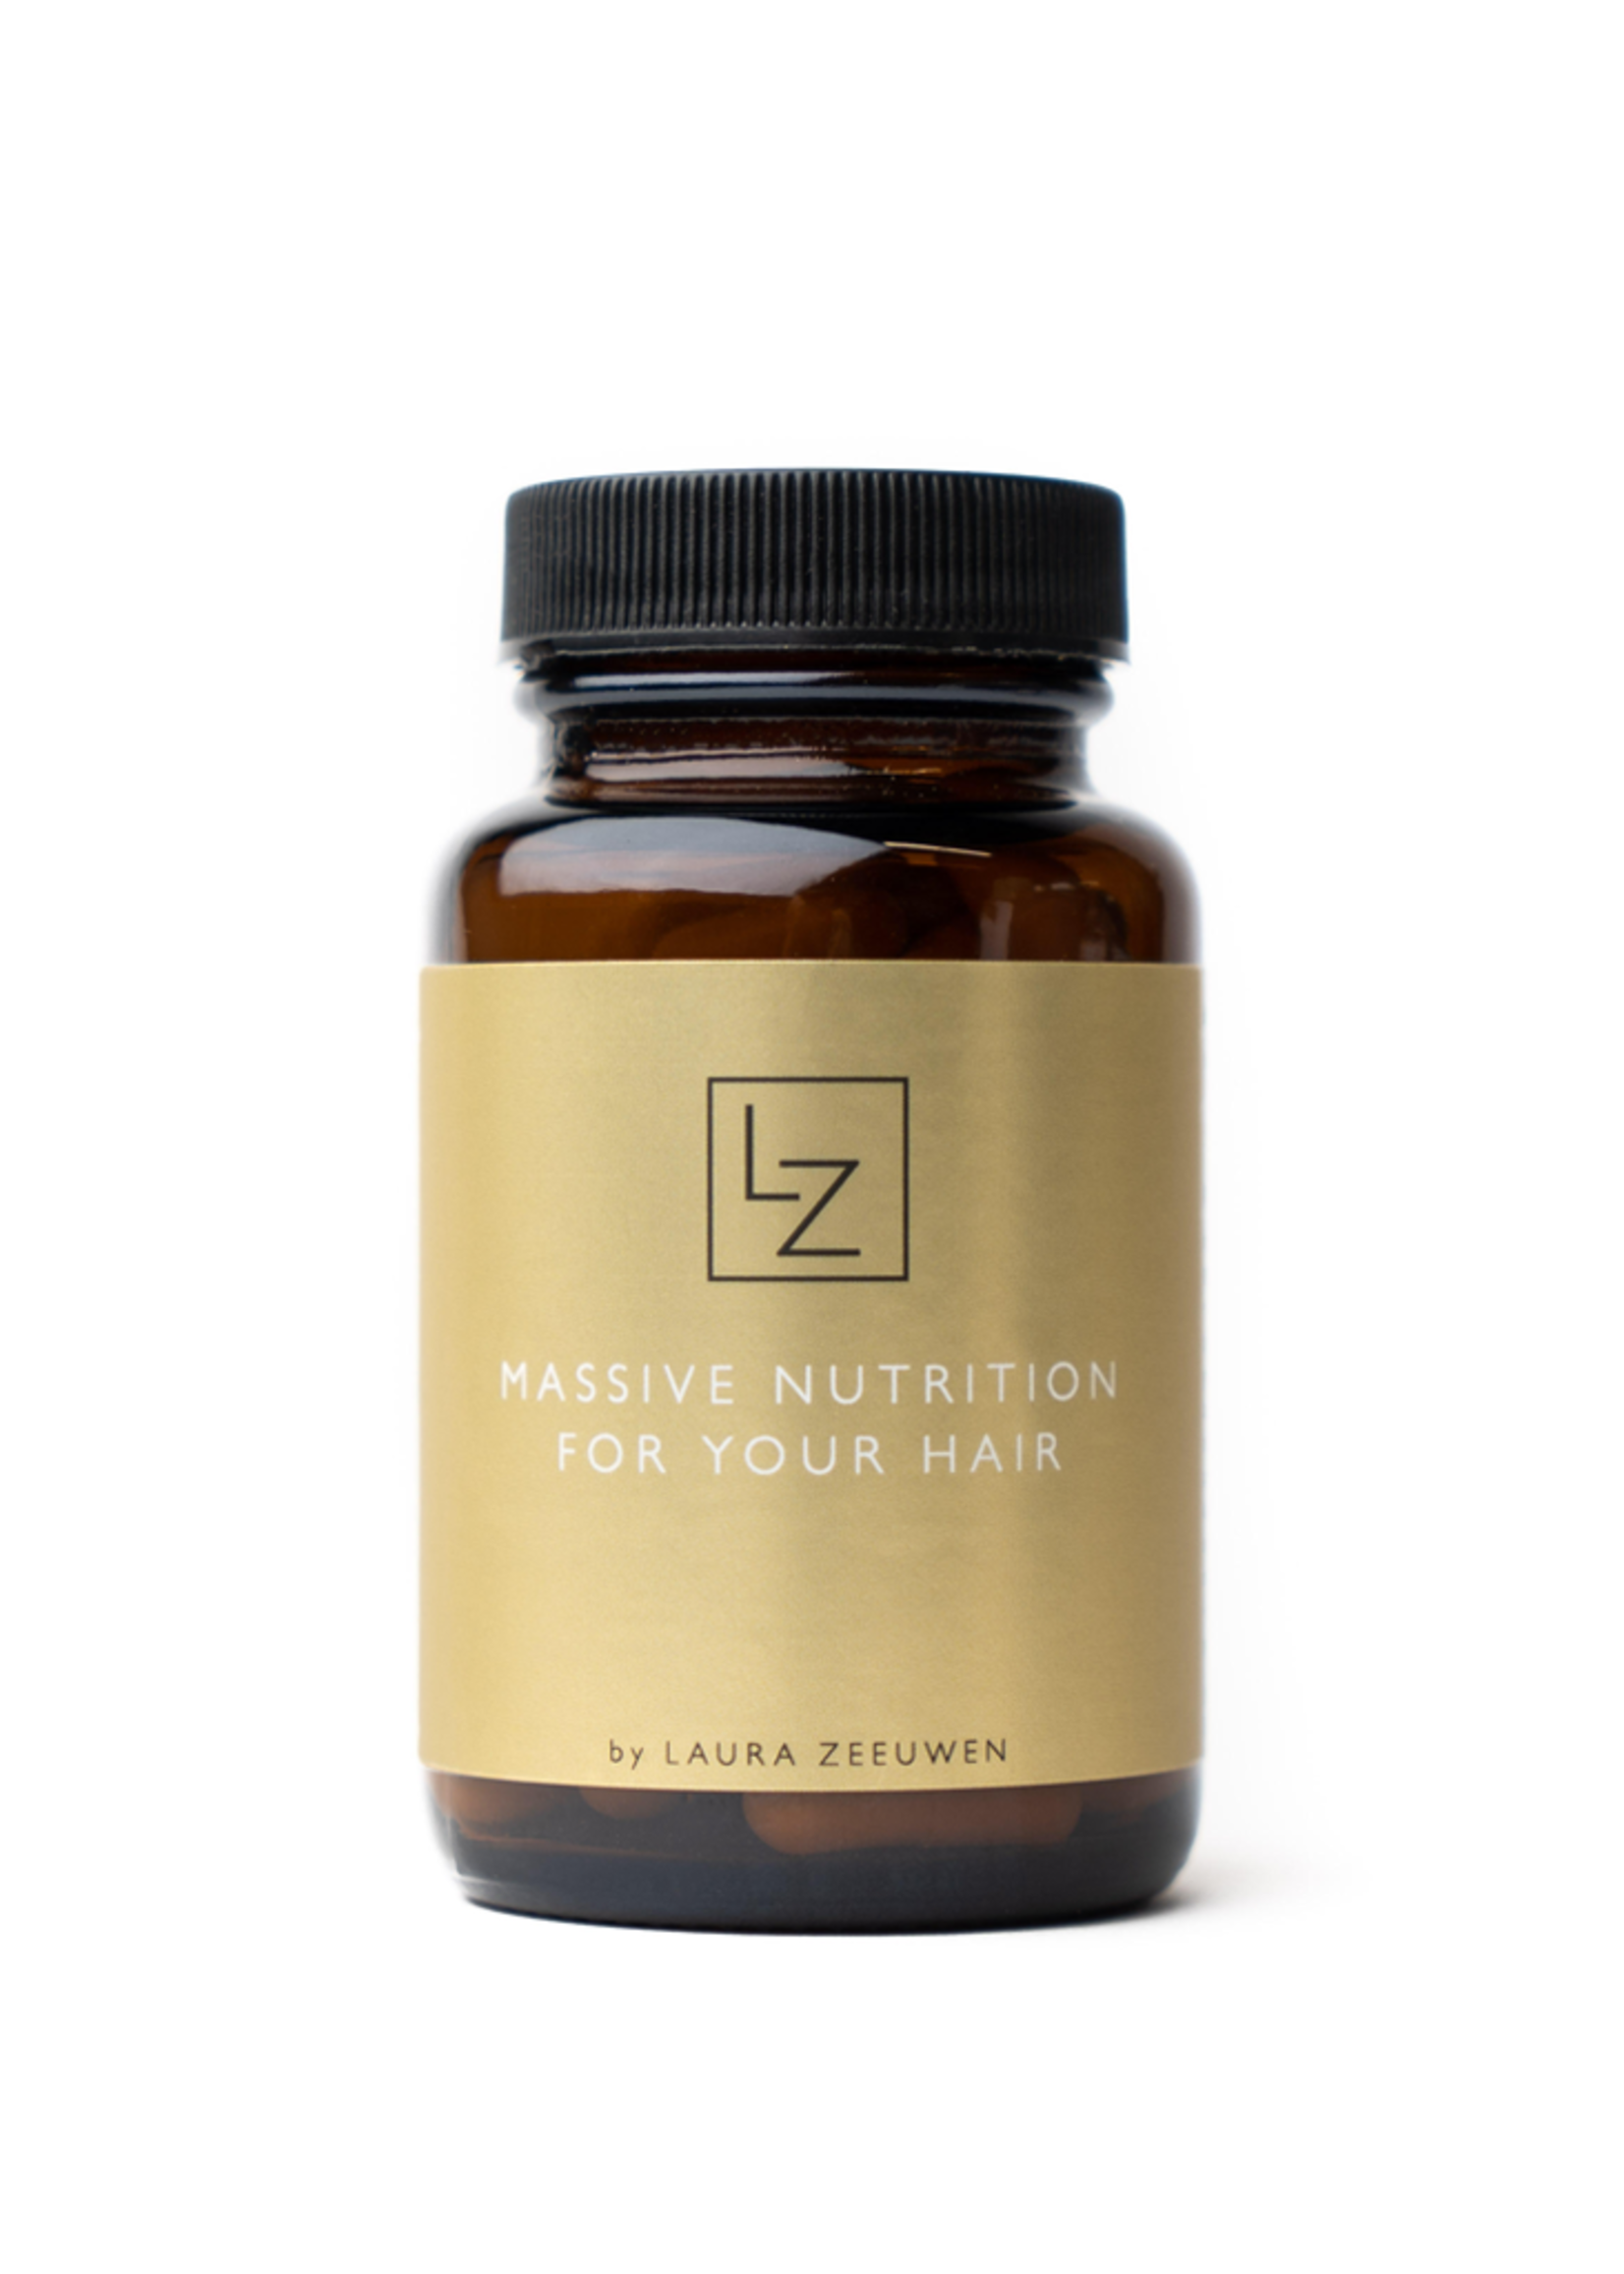 Massive nutrition for your hair.